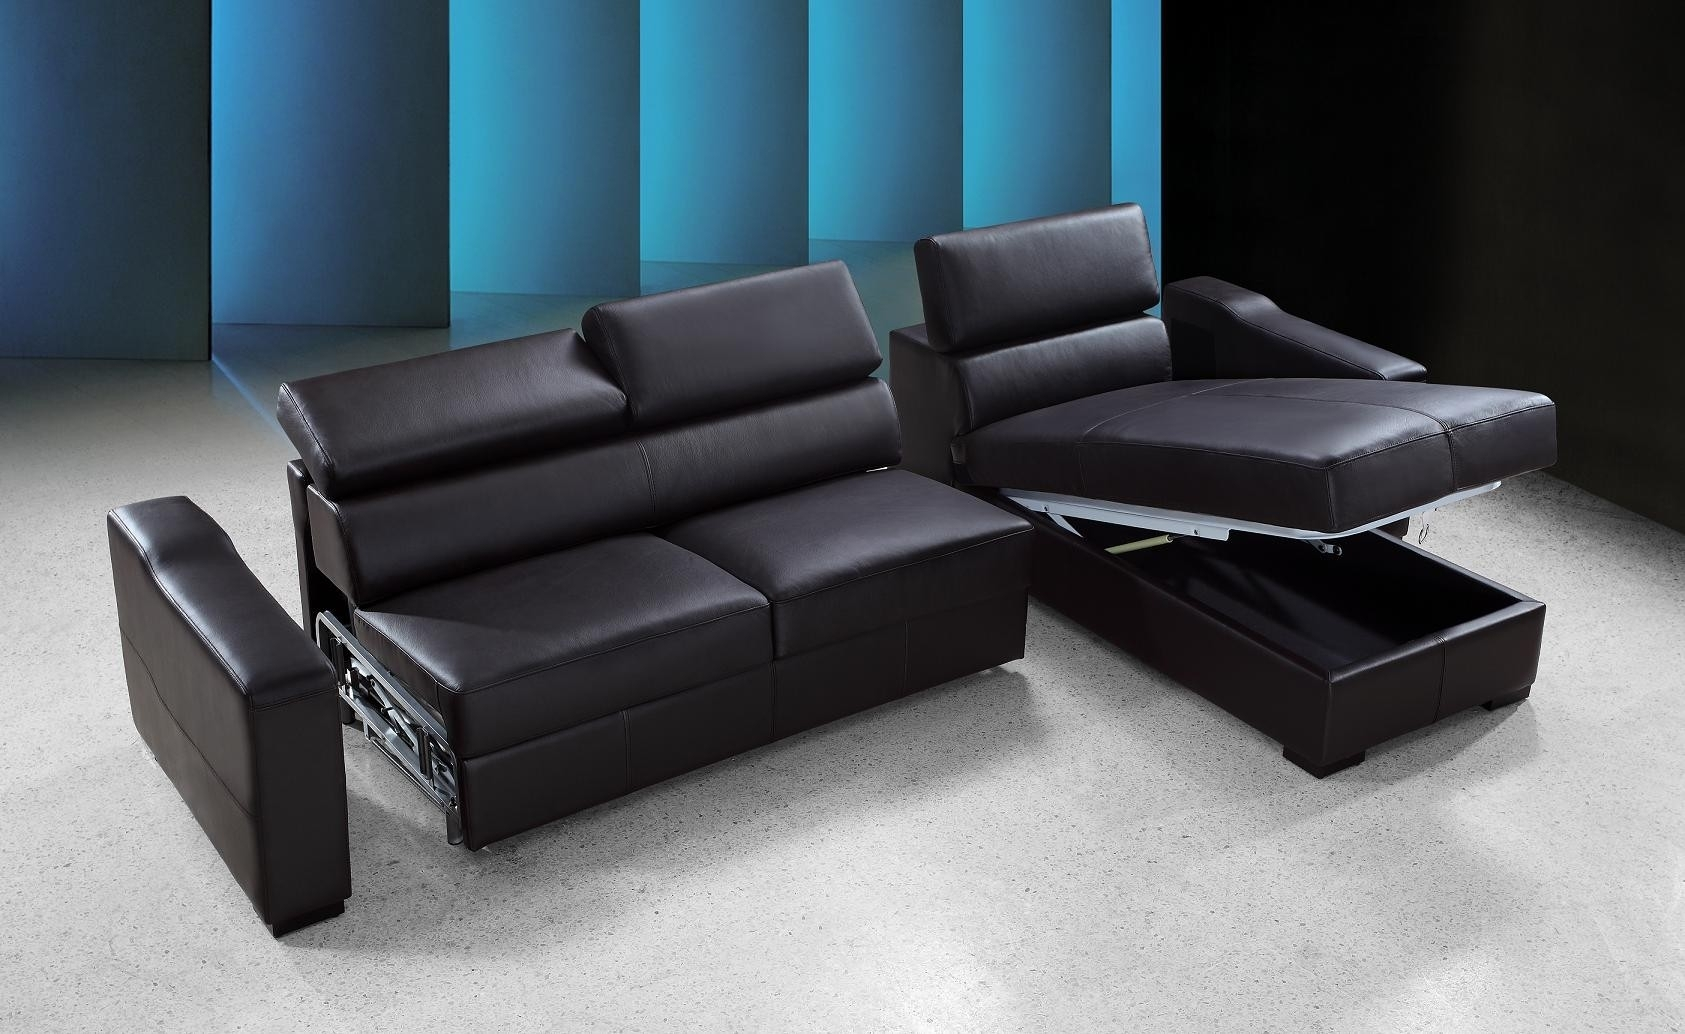 Sofa : Stunning Sectional Sofa Bed Apk 27801 2S 10X8 Cropafhs Pdp With 10X8 Sectional Sofas (View 10 of 10)